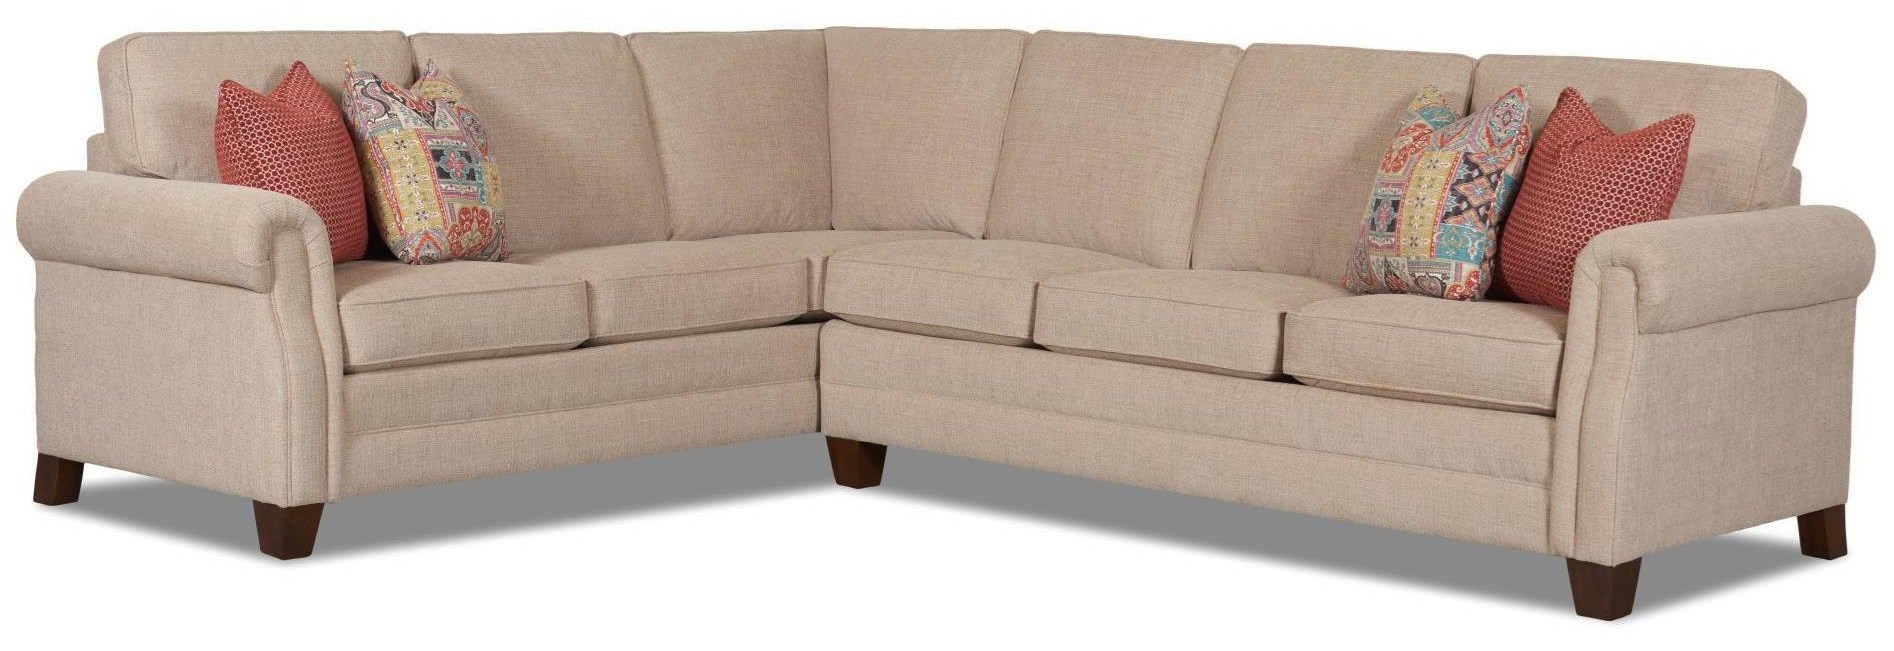 Archie 2PC Sectional Sofa at Rotmans